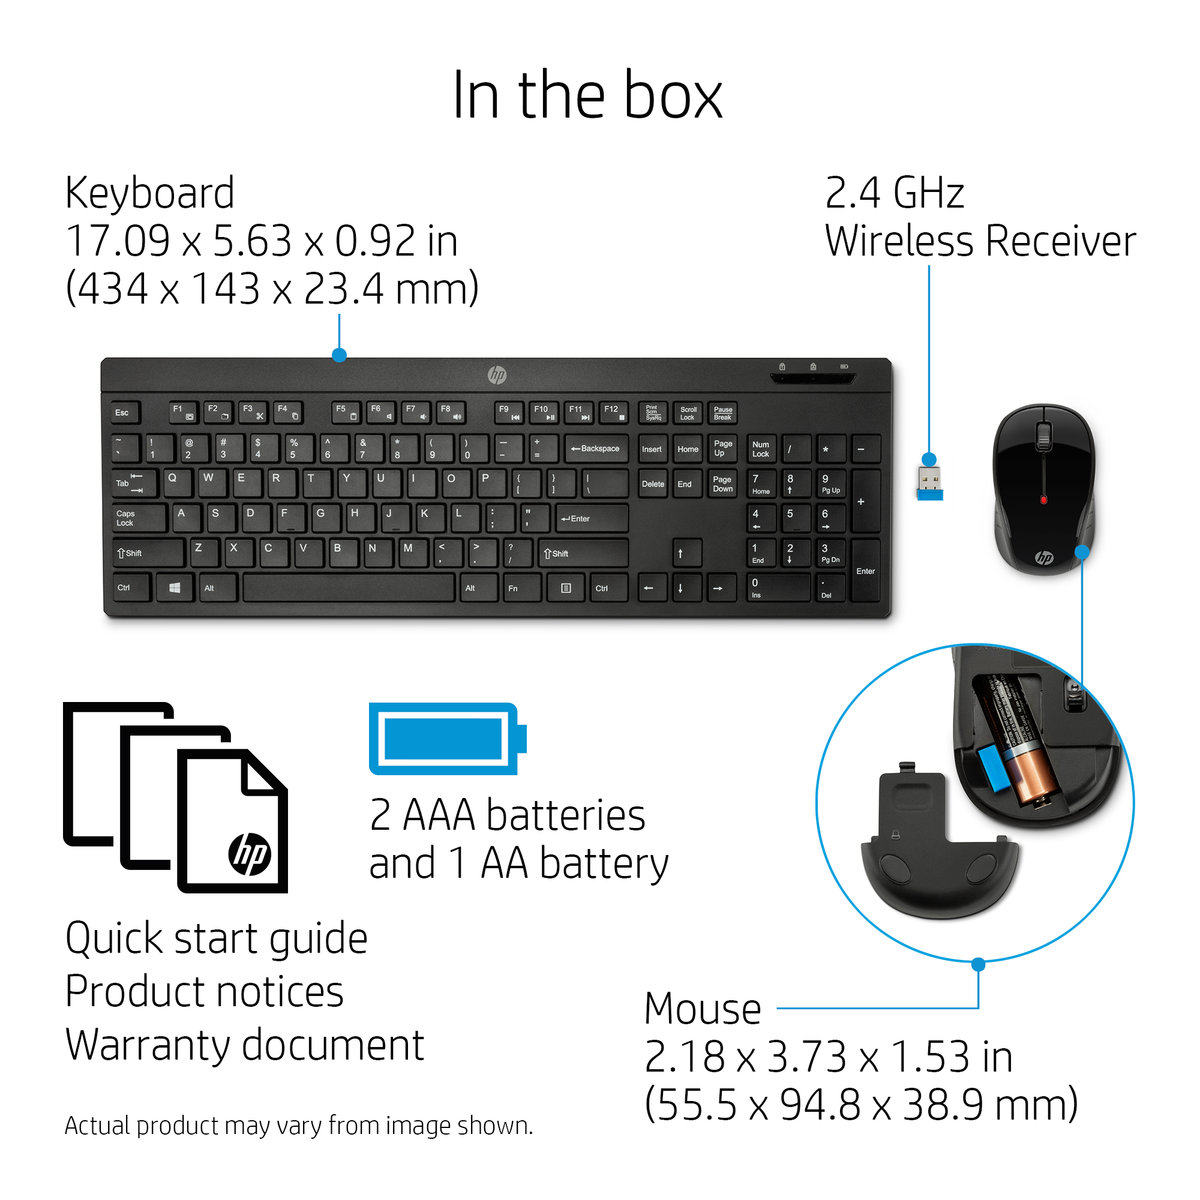 HP Combo 200 Desktop (Keyboard and Mouse), Wireless (2 4 GHz RF